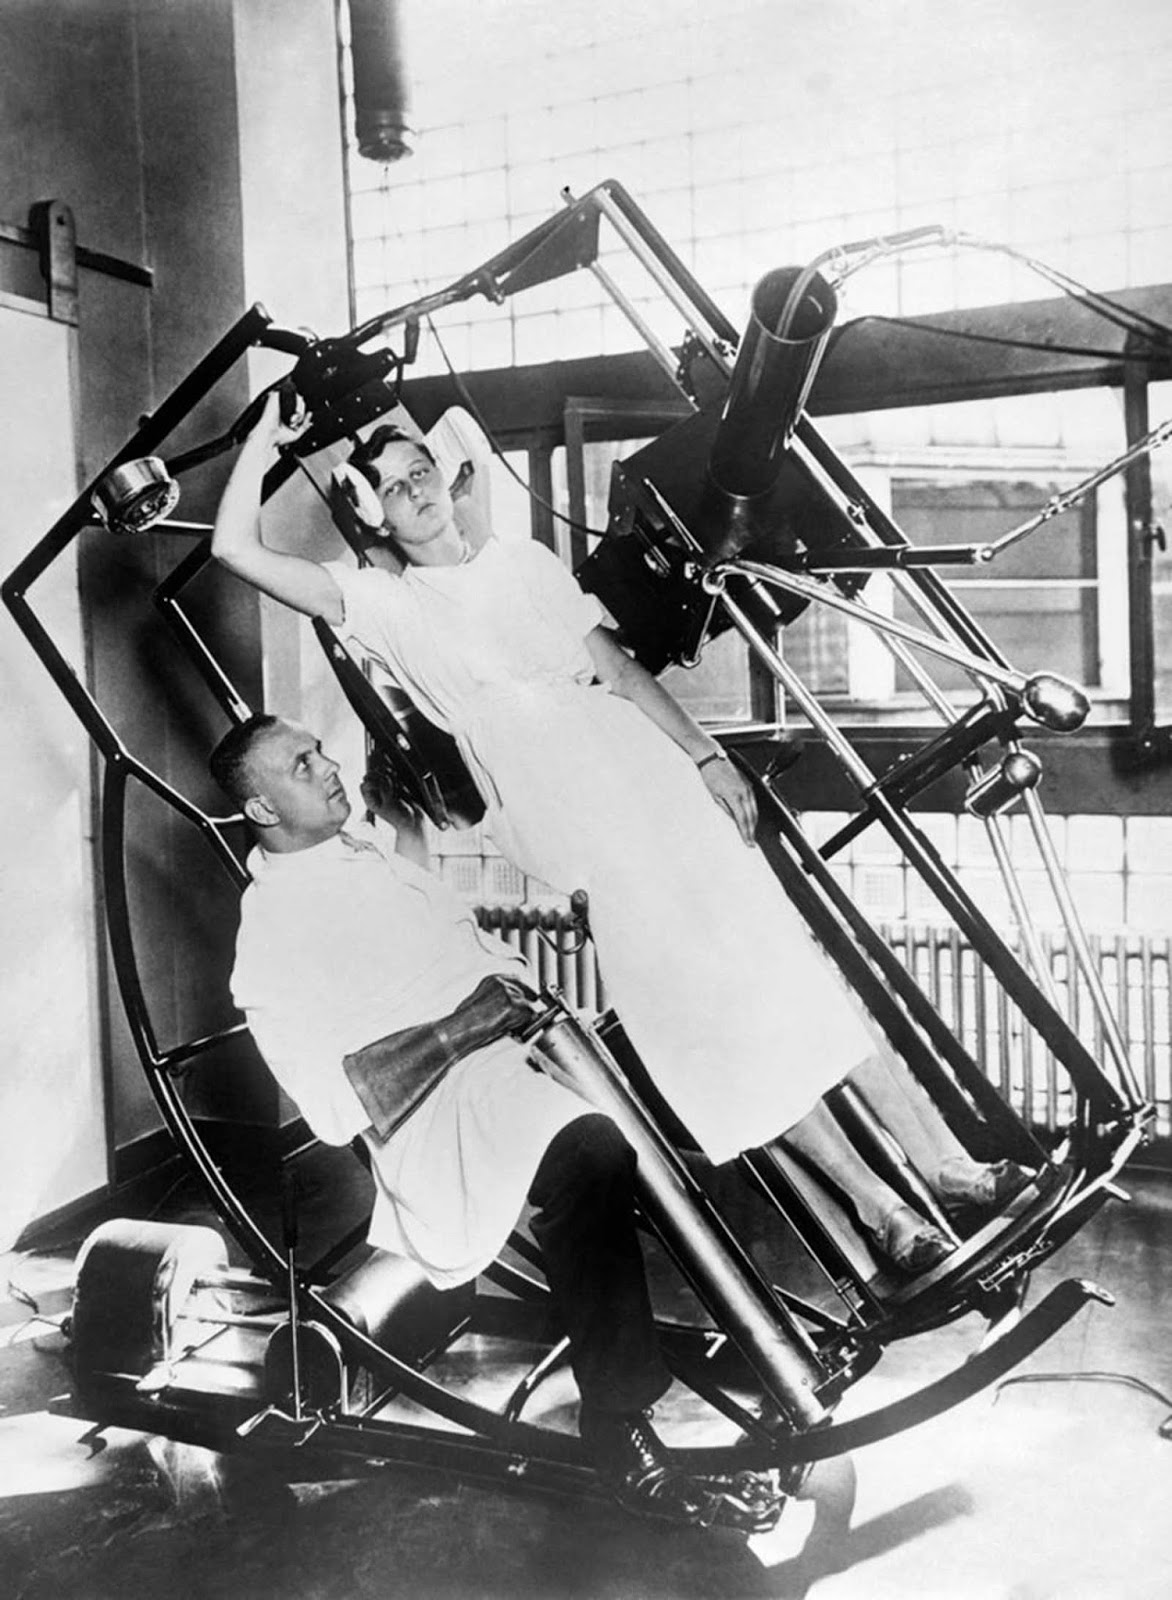 The modern Roentgen 'look through' machine, which prevents any injury to the treating physician, Frankfurt, Germany, circa 1929.